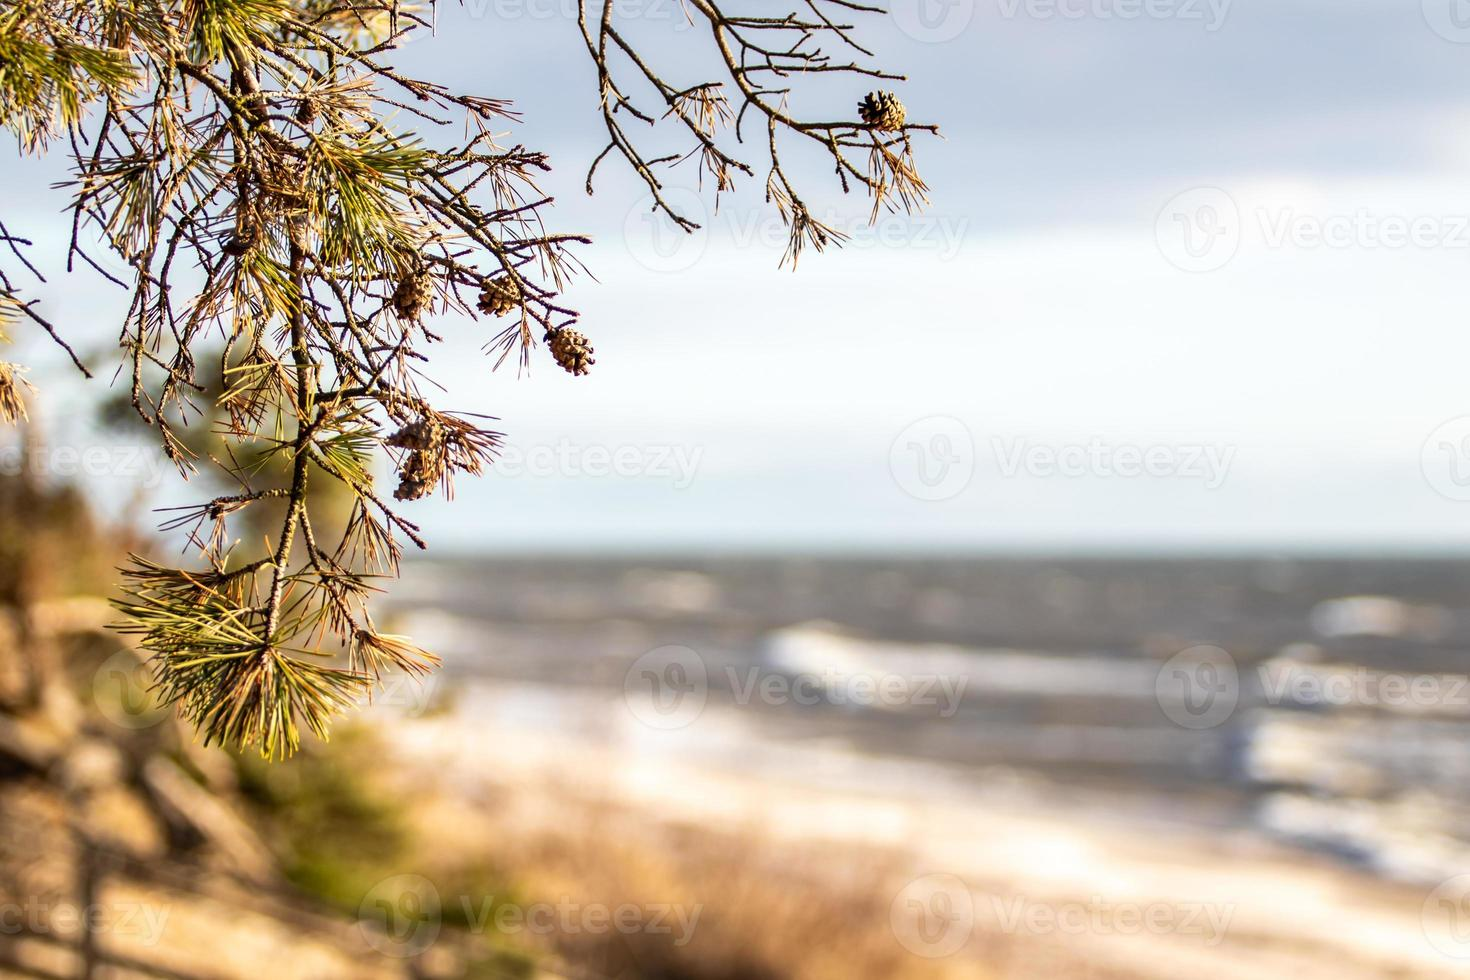 Baltic sea view on sunny day. Pine tree branch with cones in foreground and blurred background of sandy beach and sea waves photo